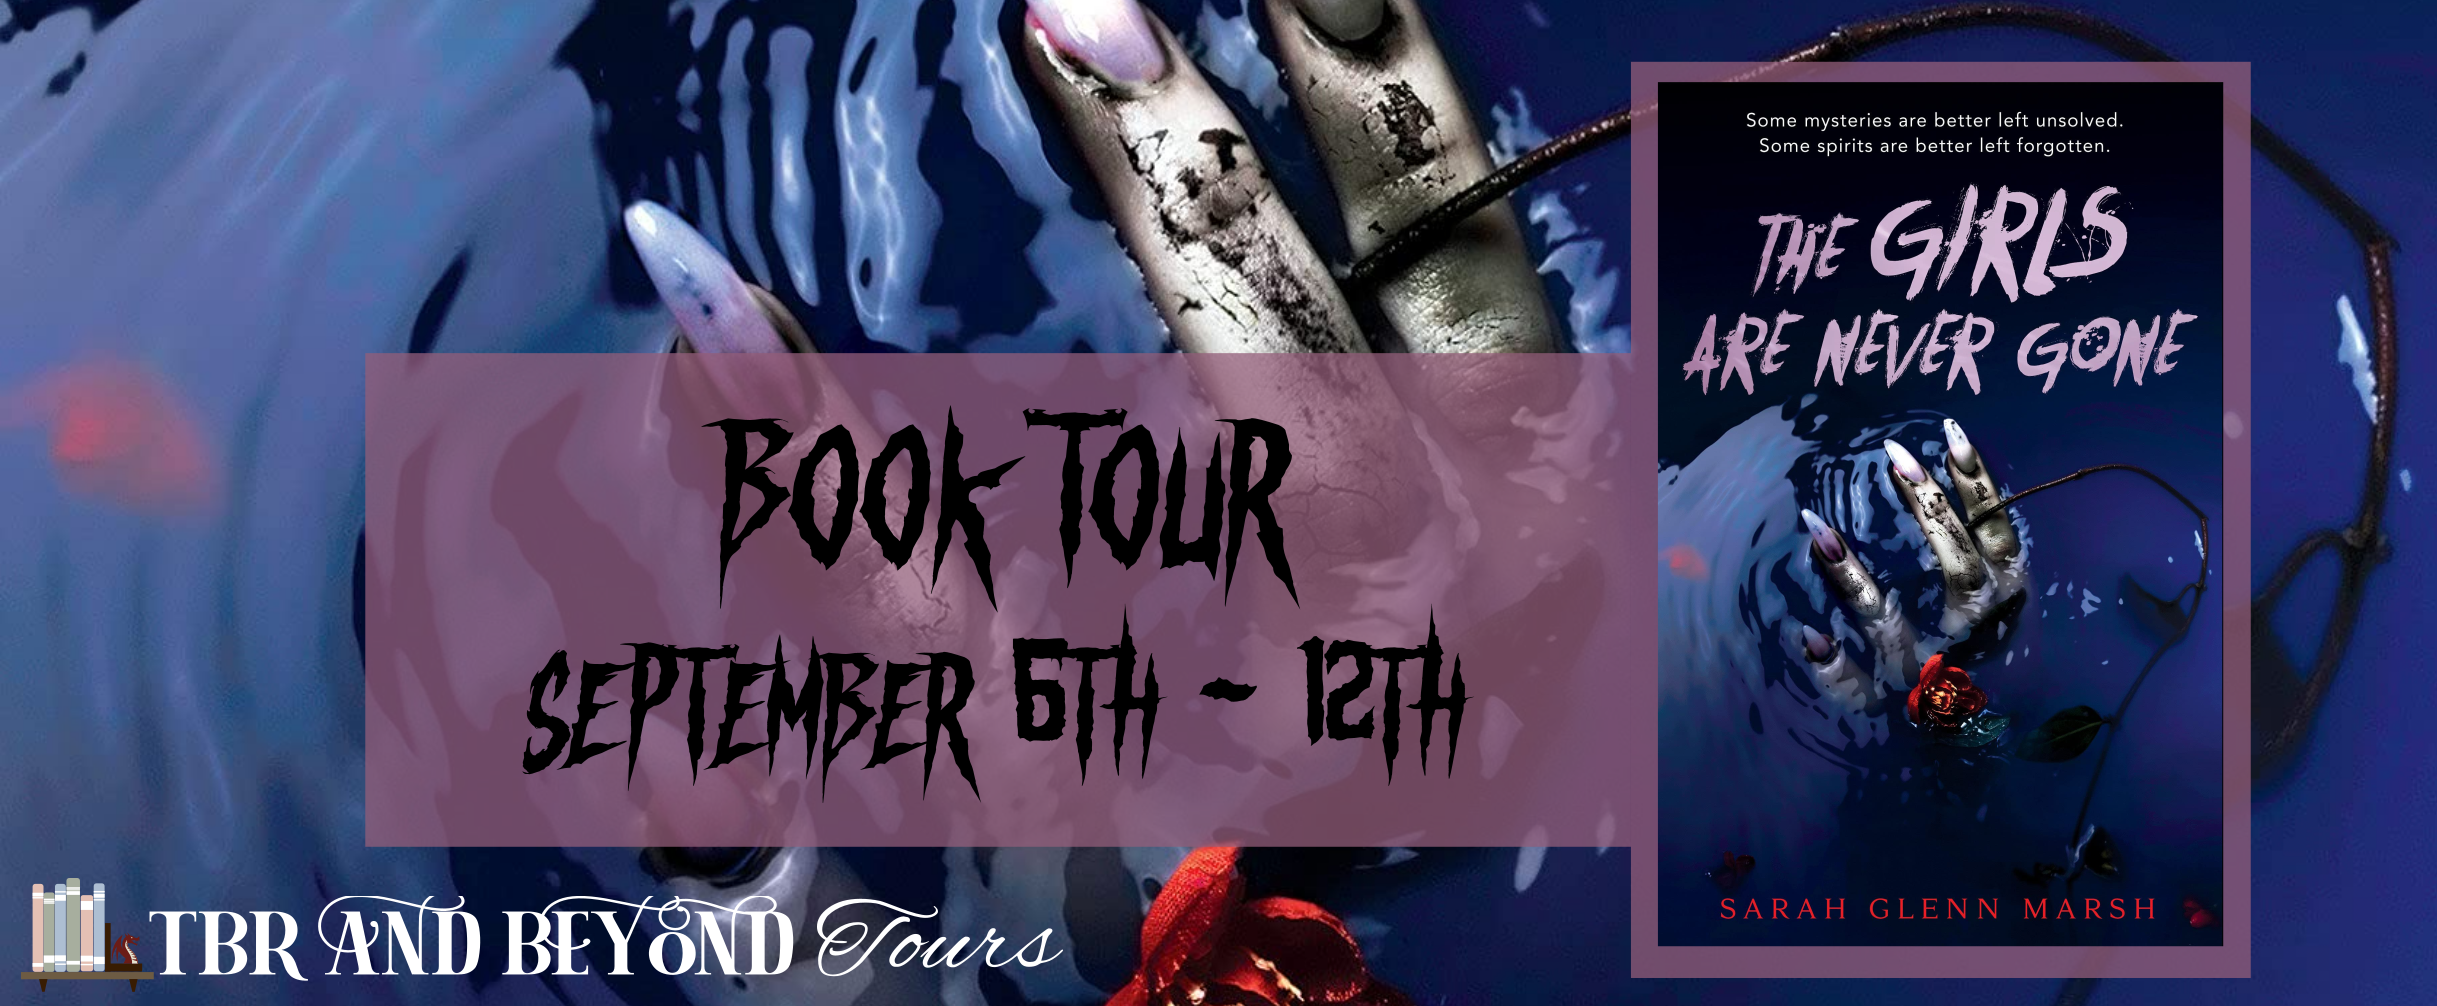 Blog Tour: The Girls Are Never Gone by Sarah Glenn Marsh (Interview + Giveaway!)